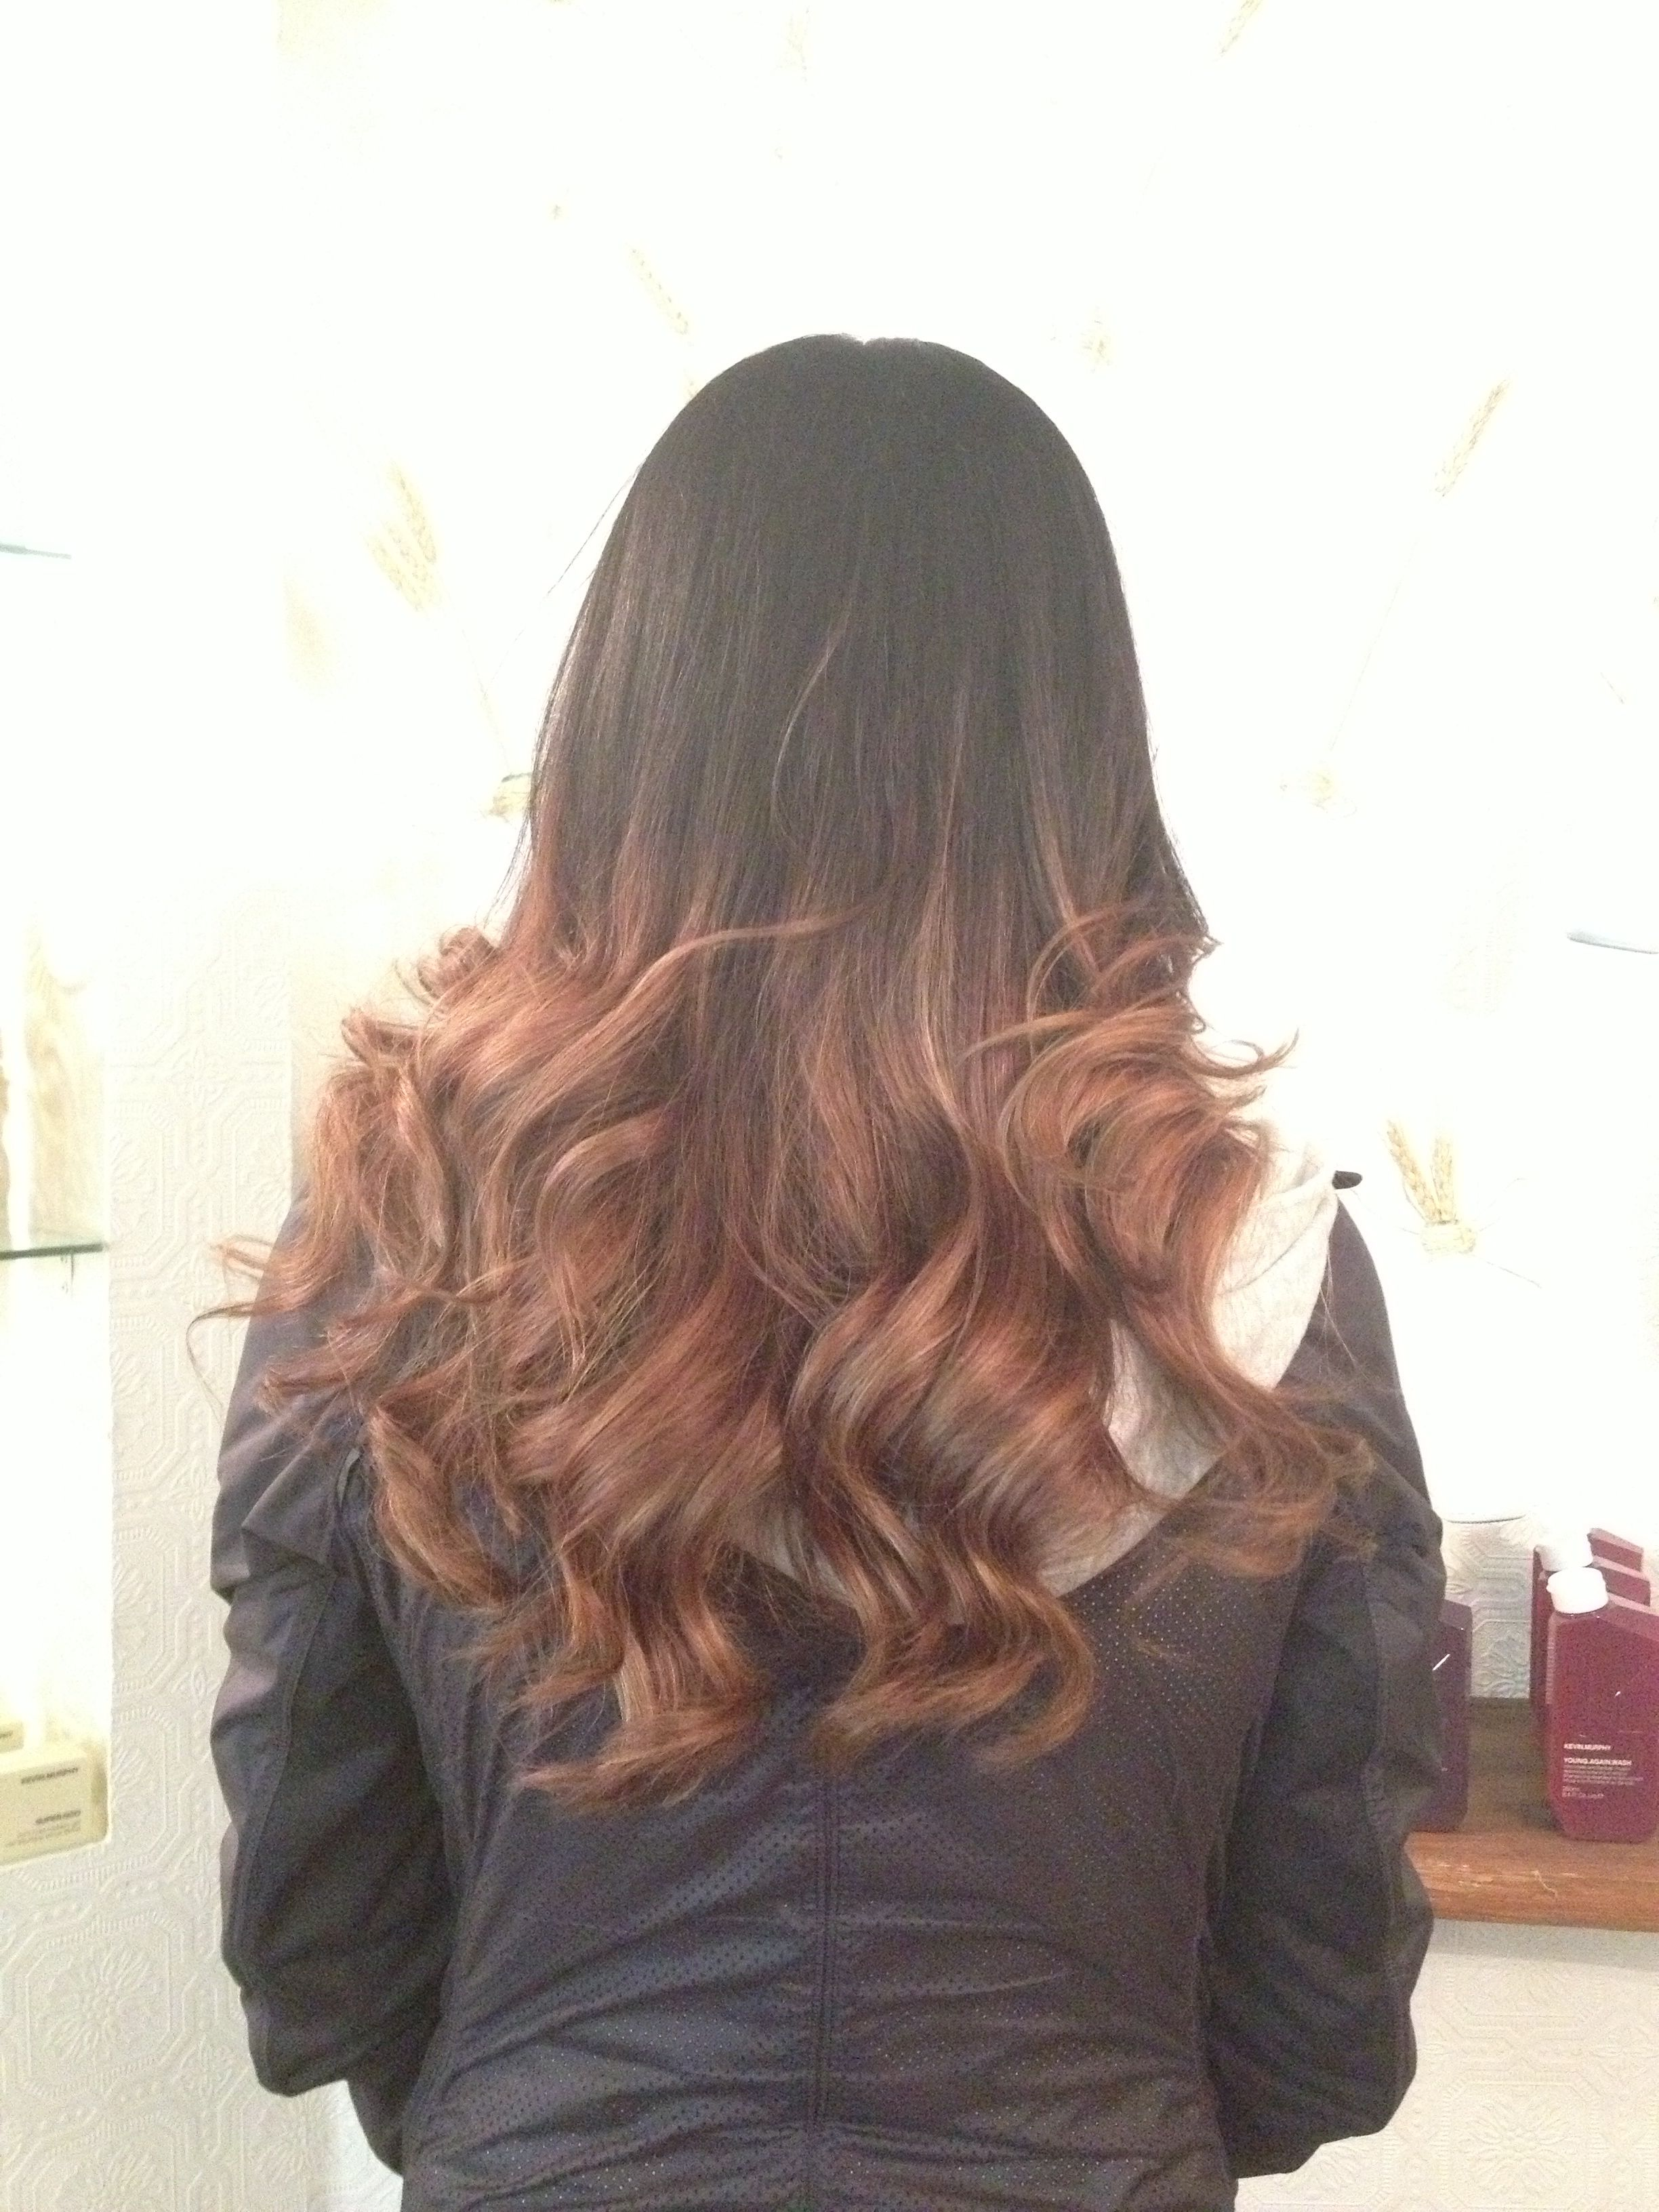 Hair by Kaley @thebeautyparlour